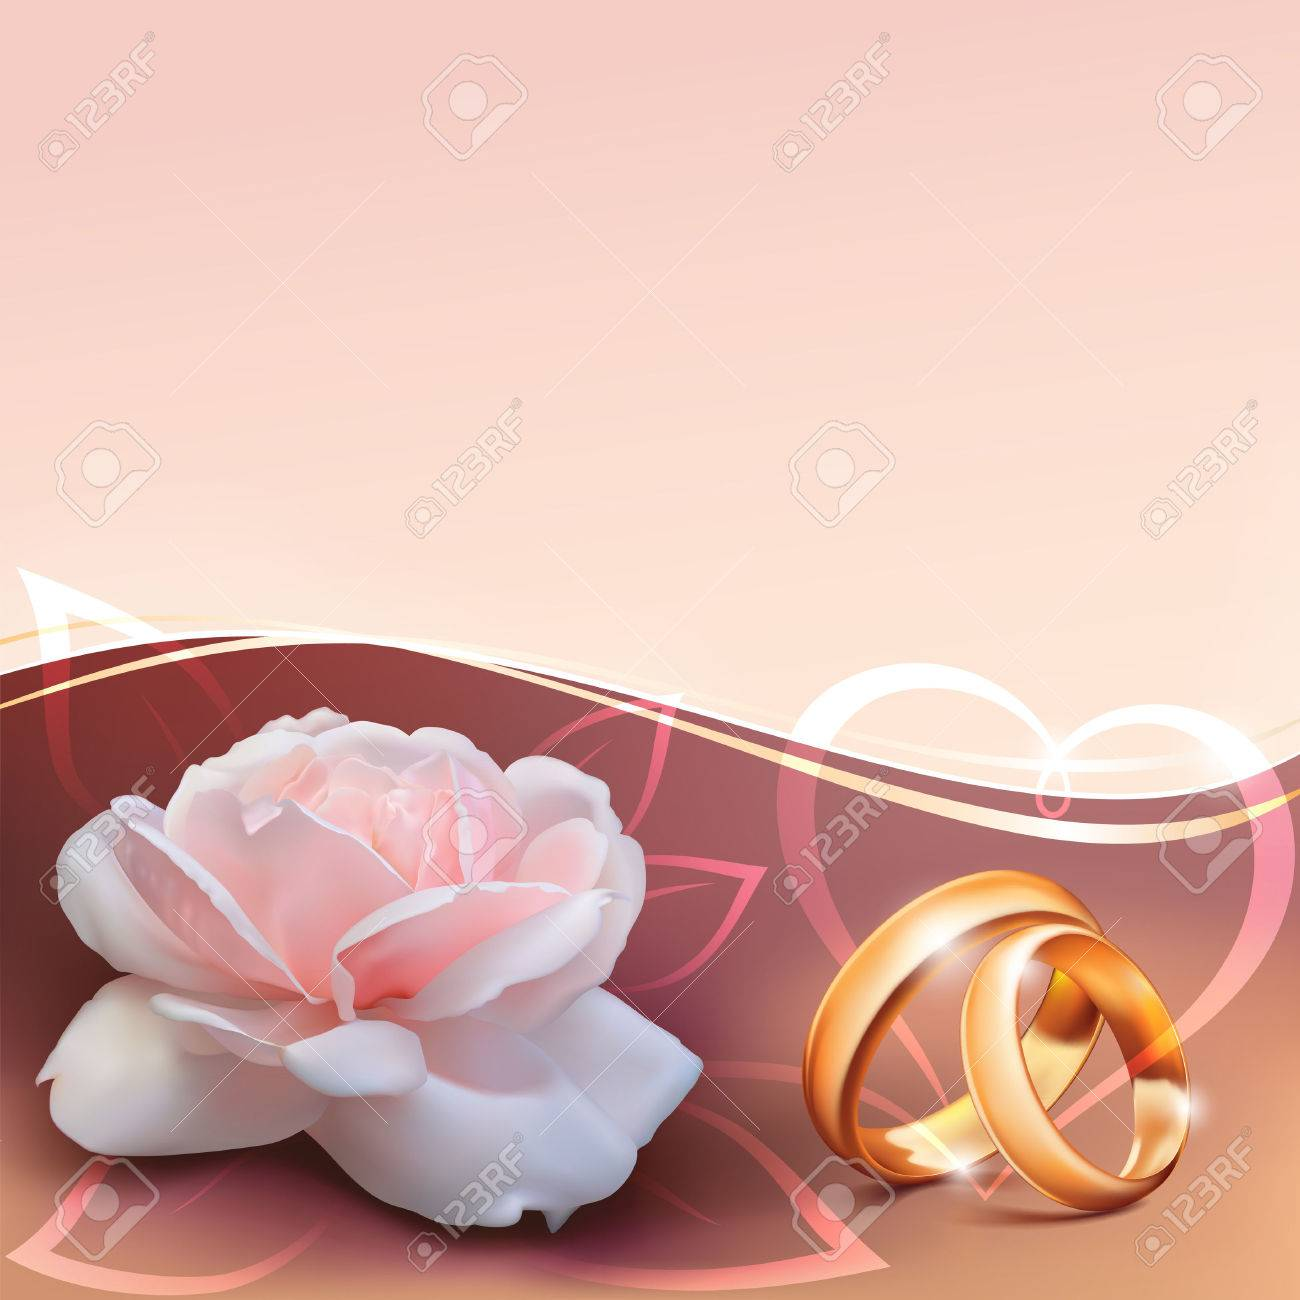 Invitation Card For Wedding With Flower, Ribbon And Wedding Rings ...